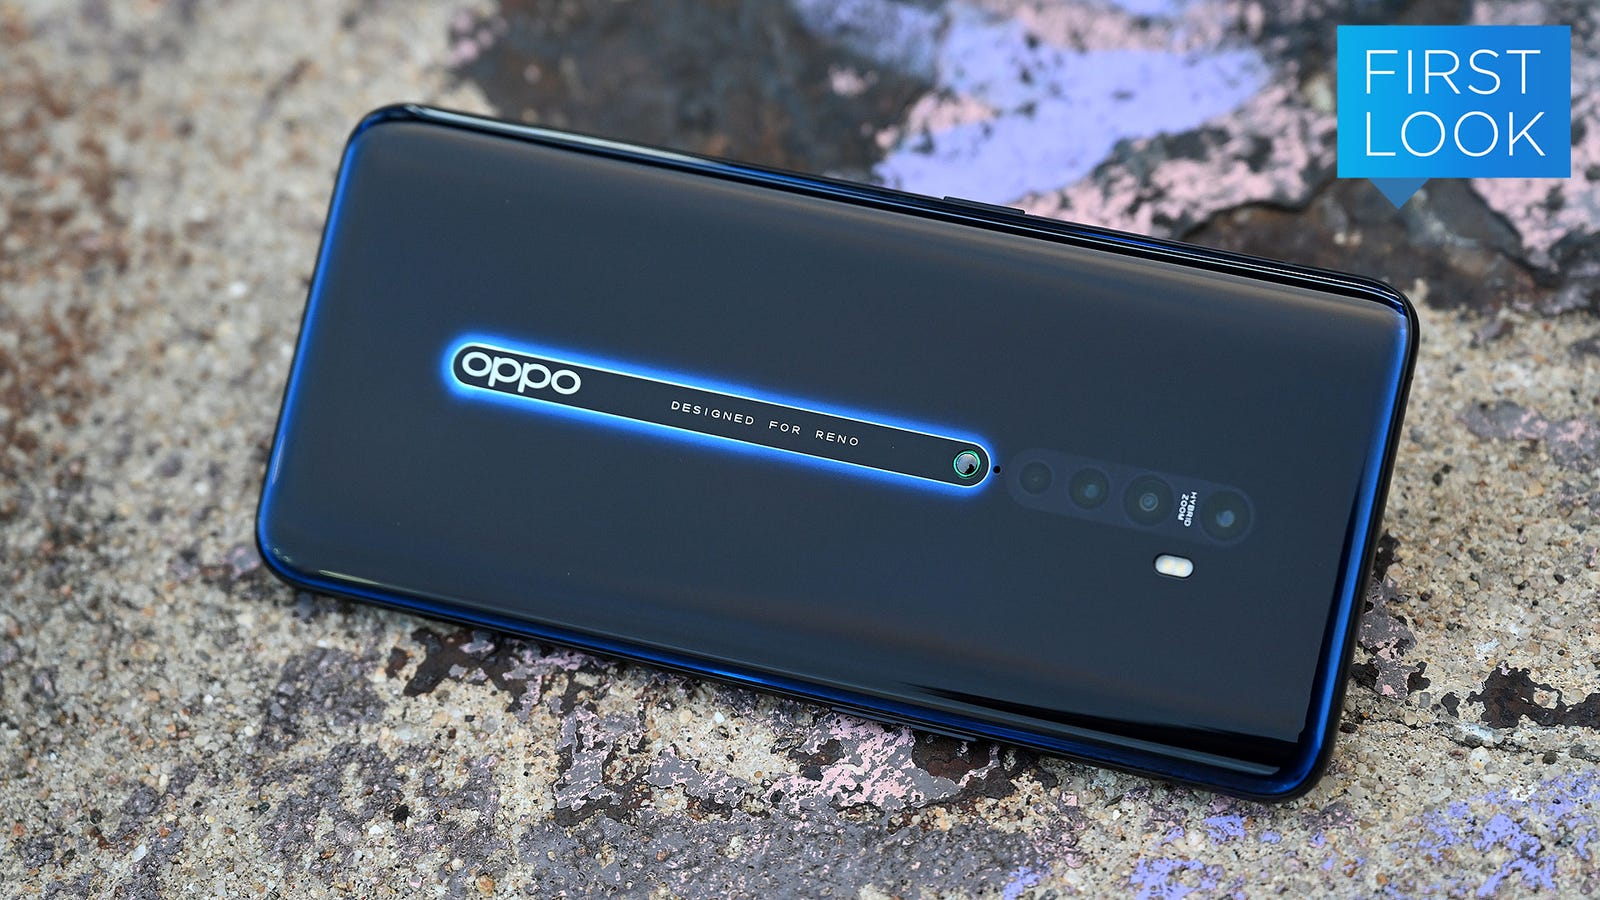 A Shark Fin and Ceramic Nipple Make the Oppo Reno 2 Wacky, Yet Sophisticated